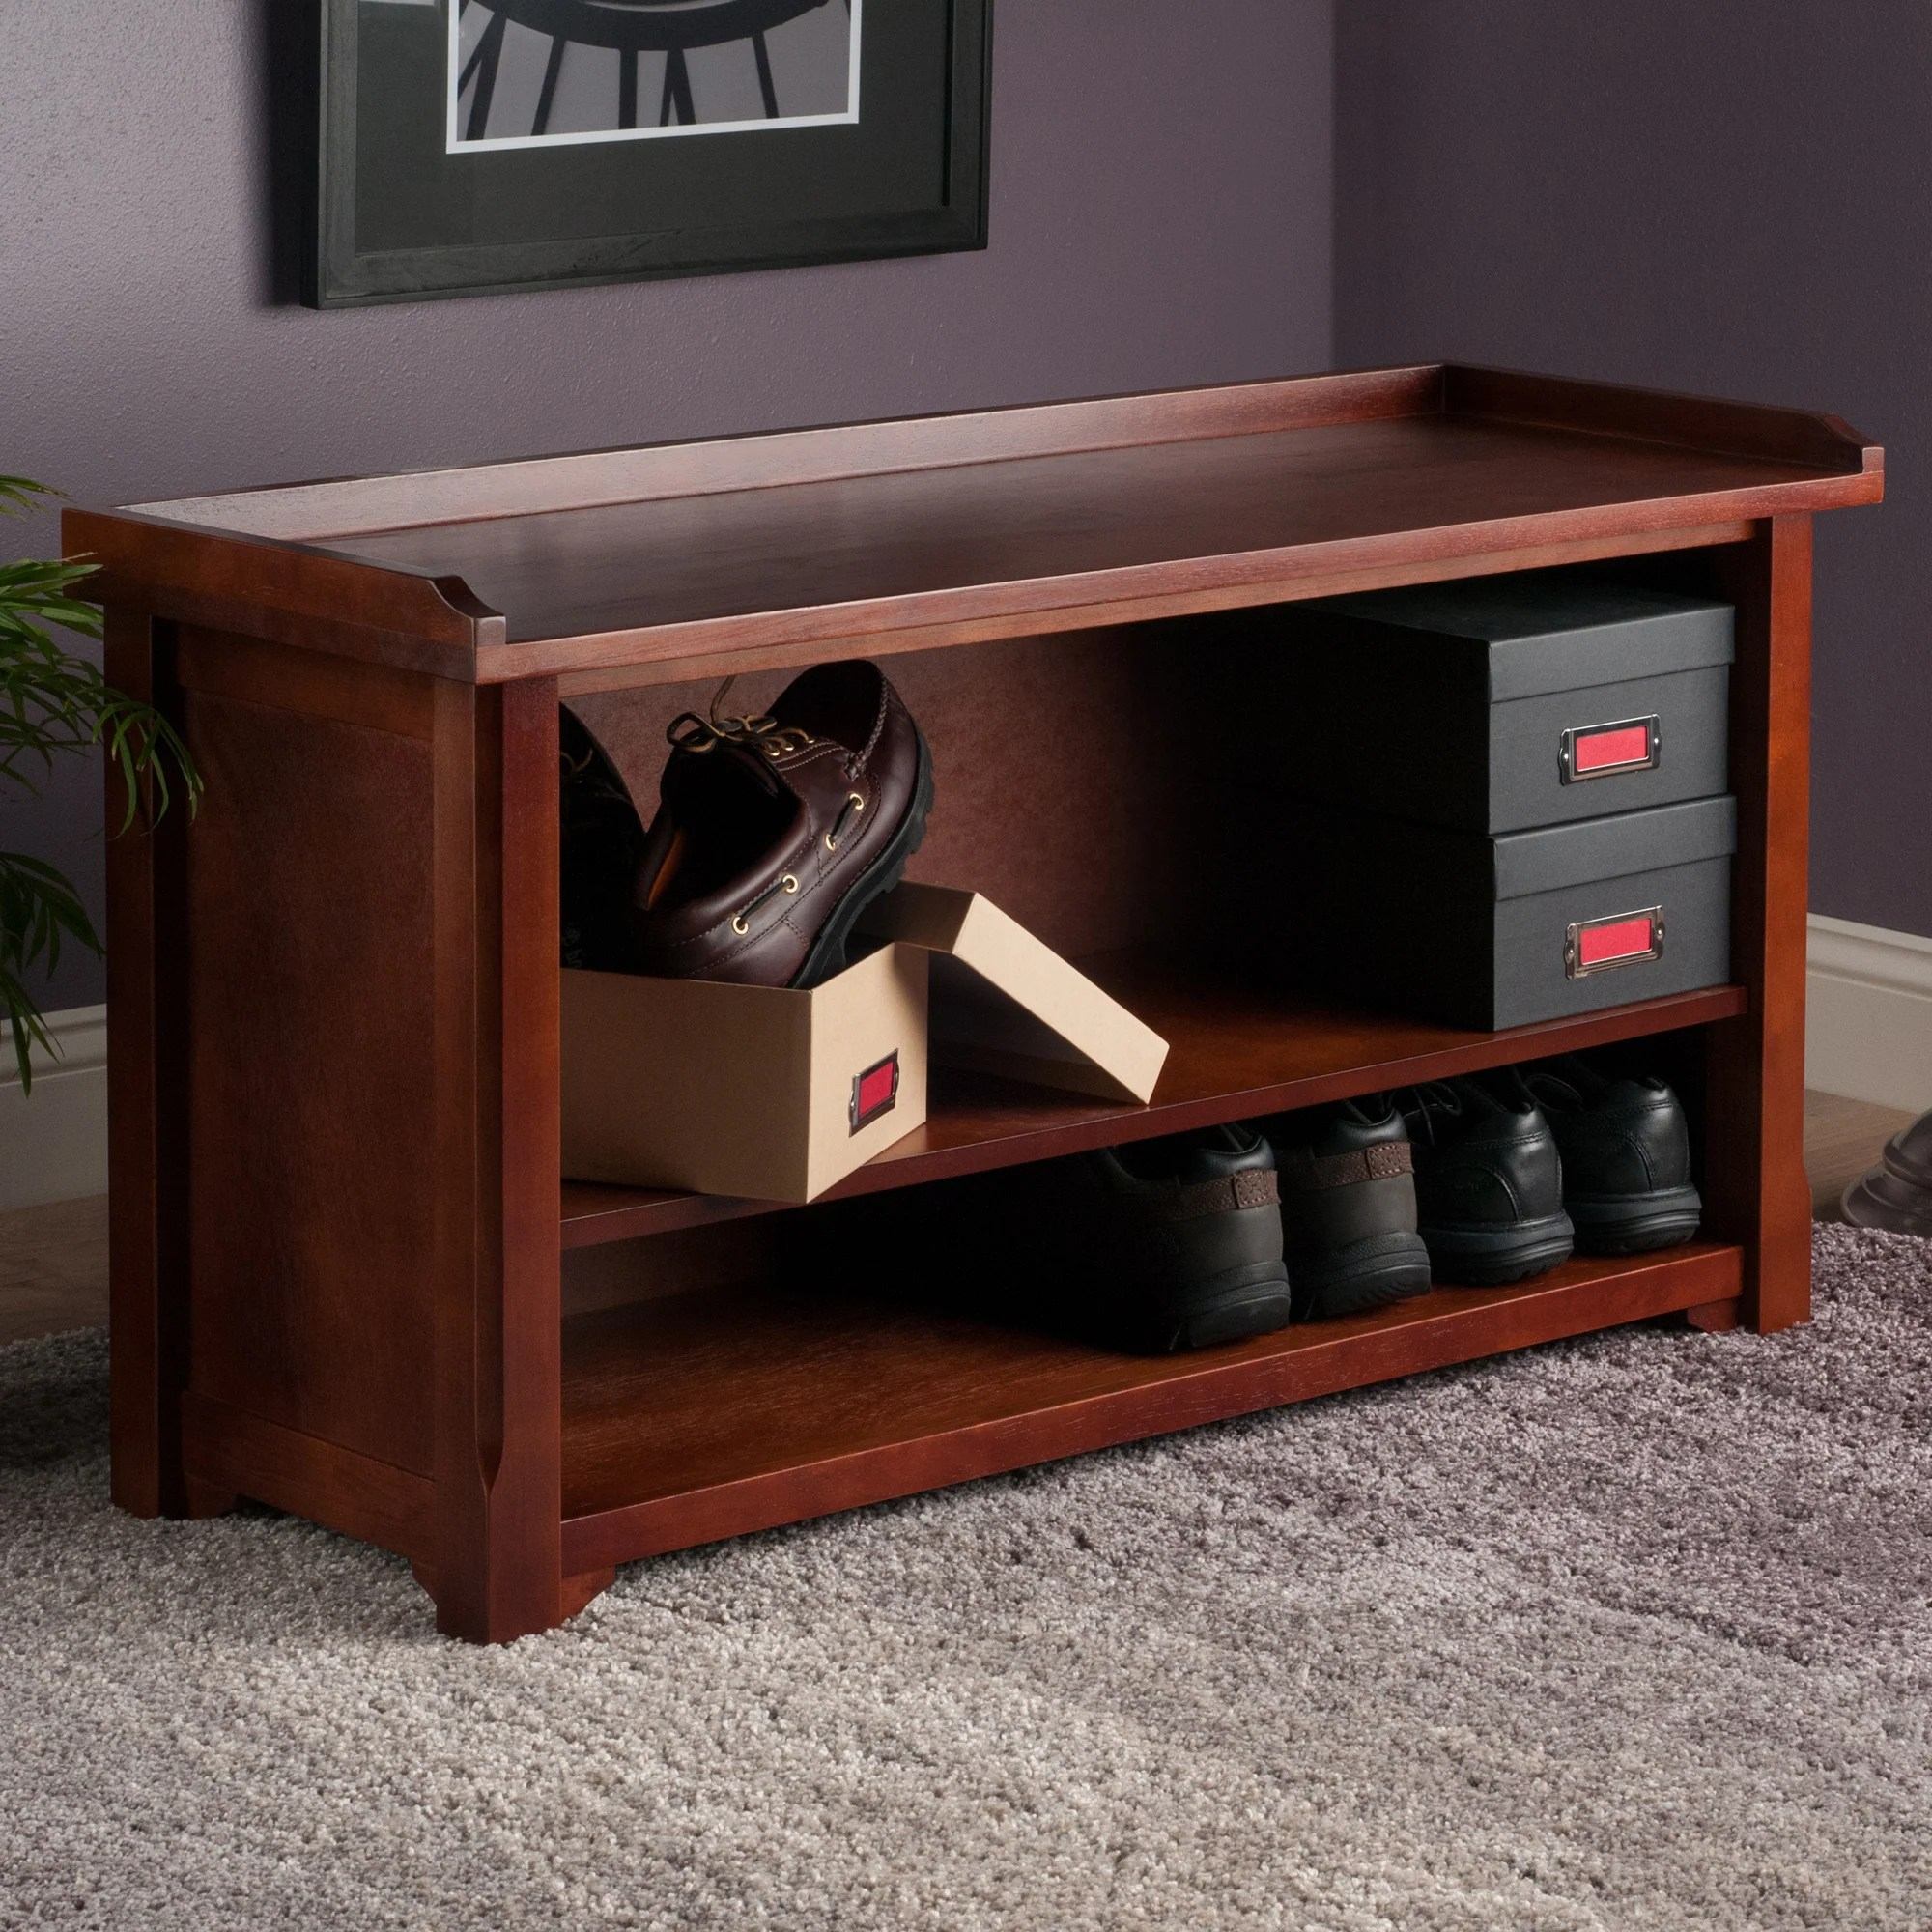 Wooden Storage Bench Details About Alcott Hill Alasan Wooden Storage Bench Alct4976